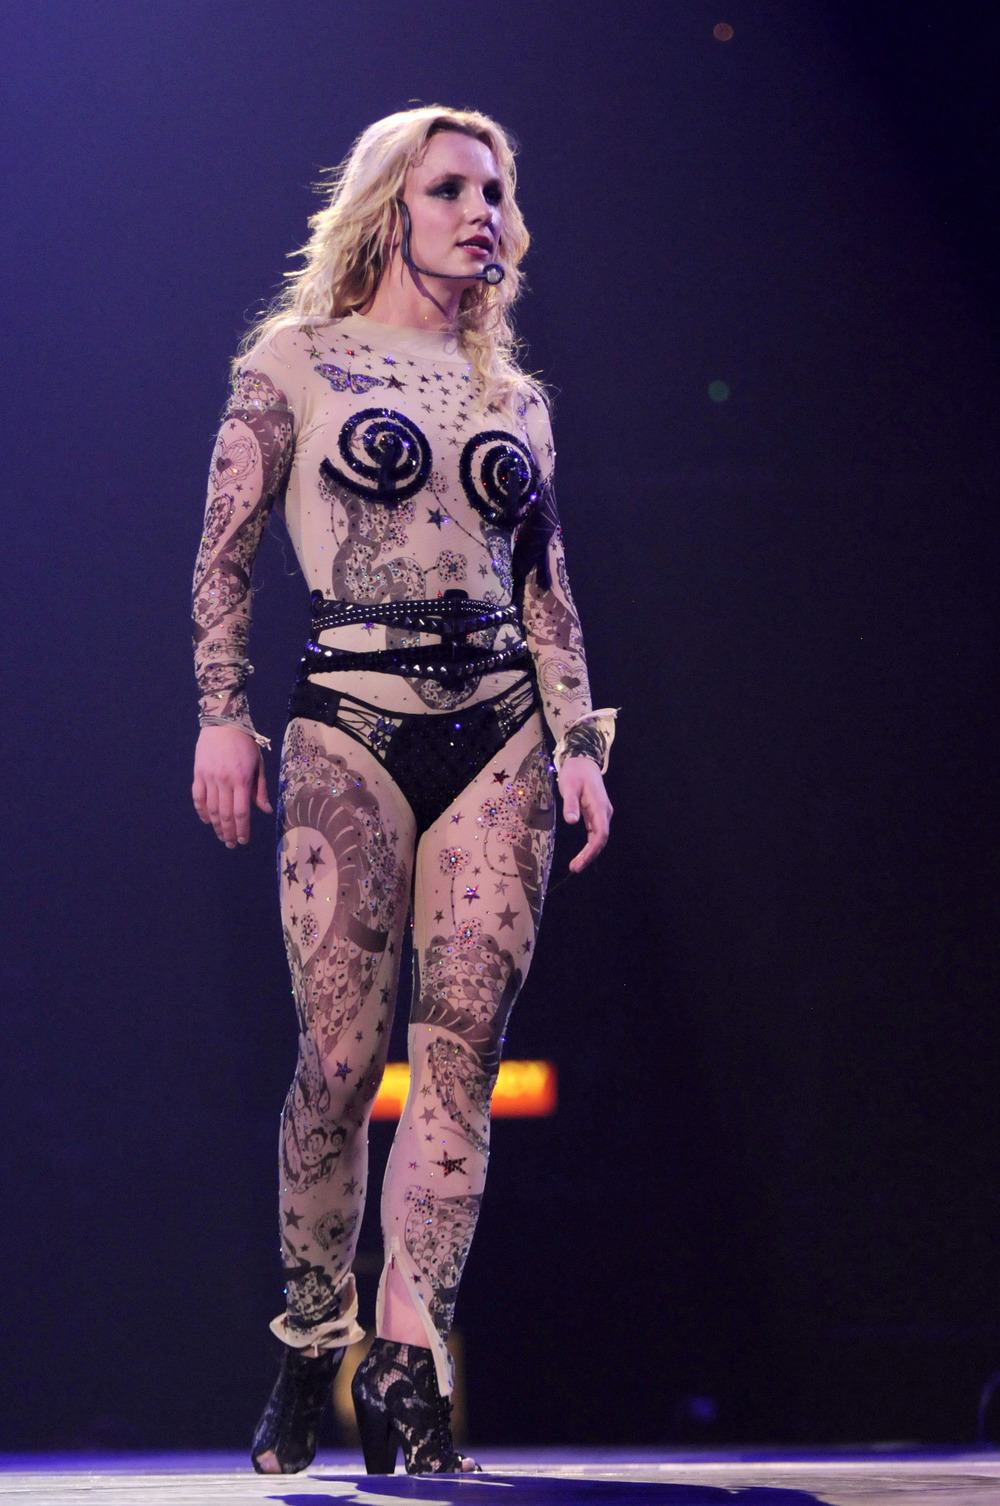 The-Circus-Starring-Britney-Spears_Vettri.Net-17.jpg